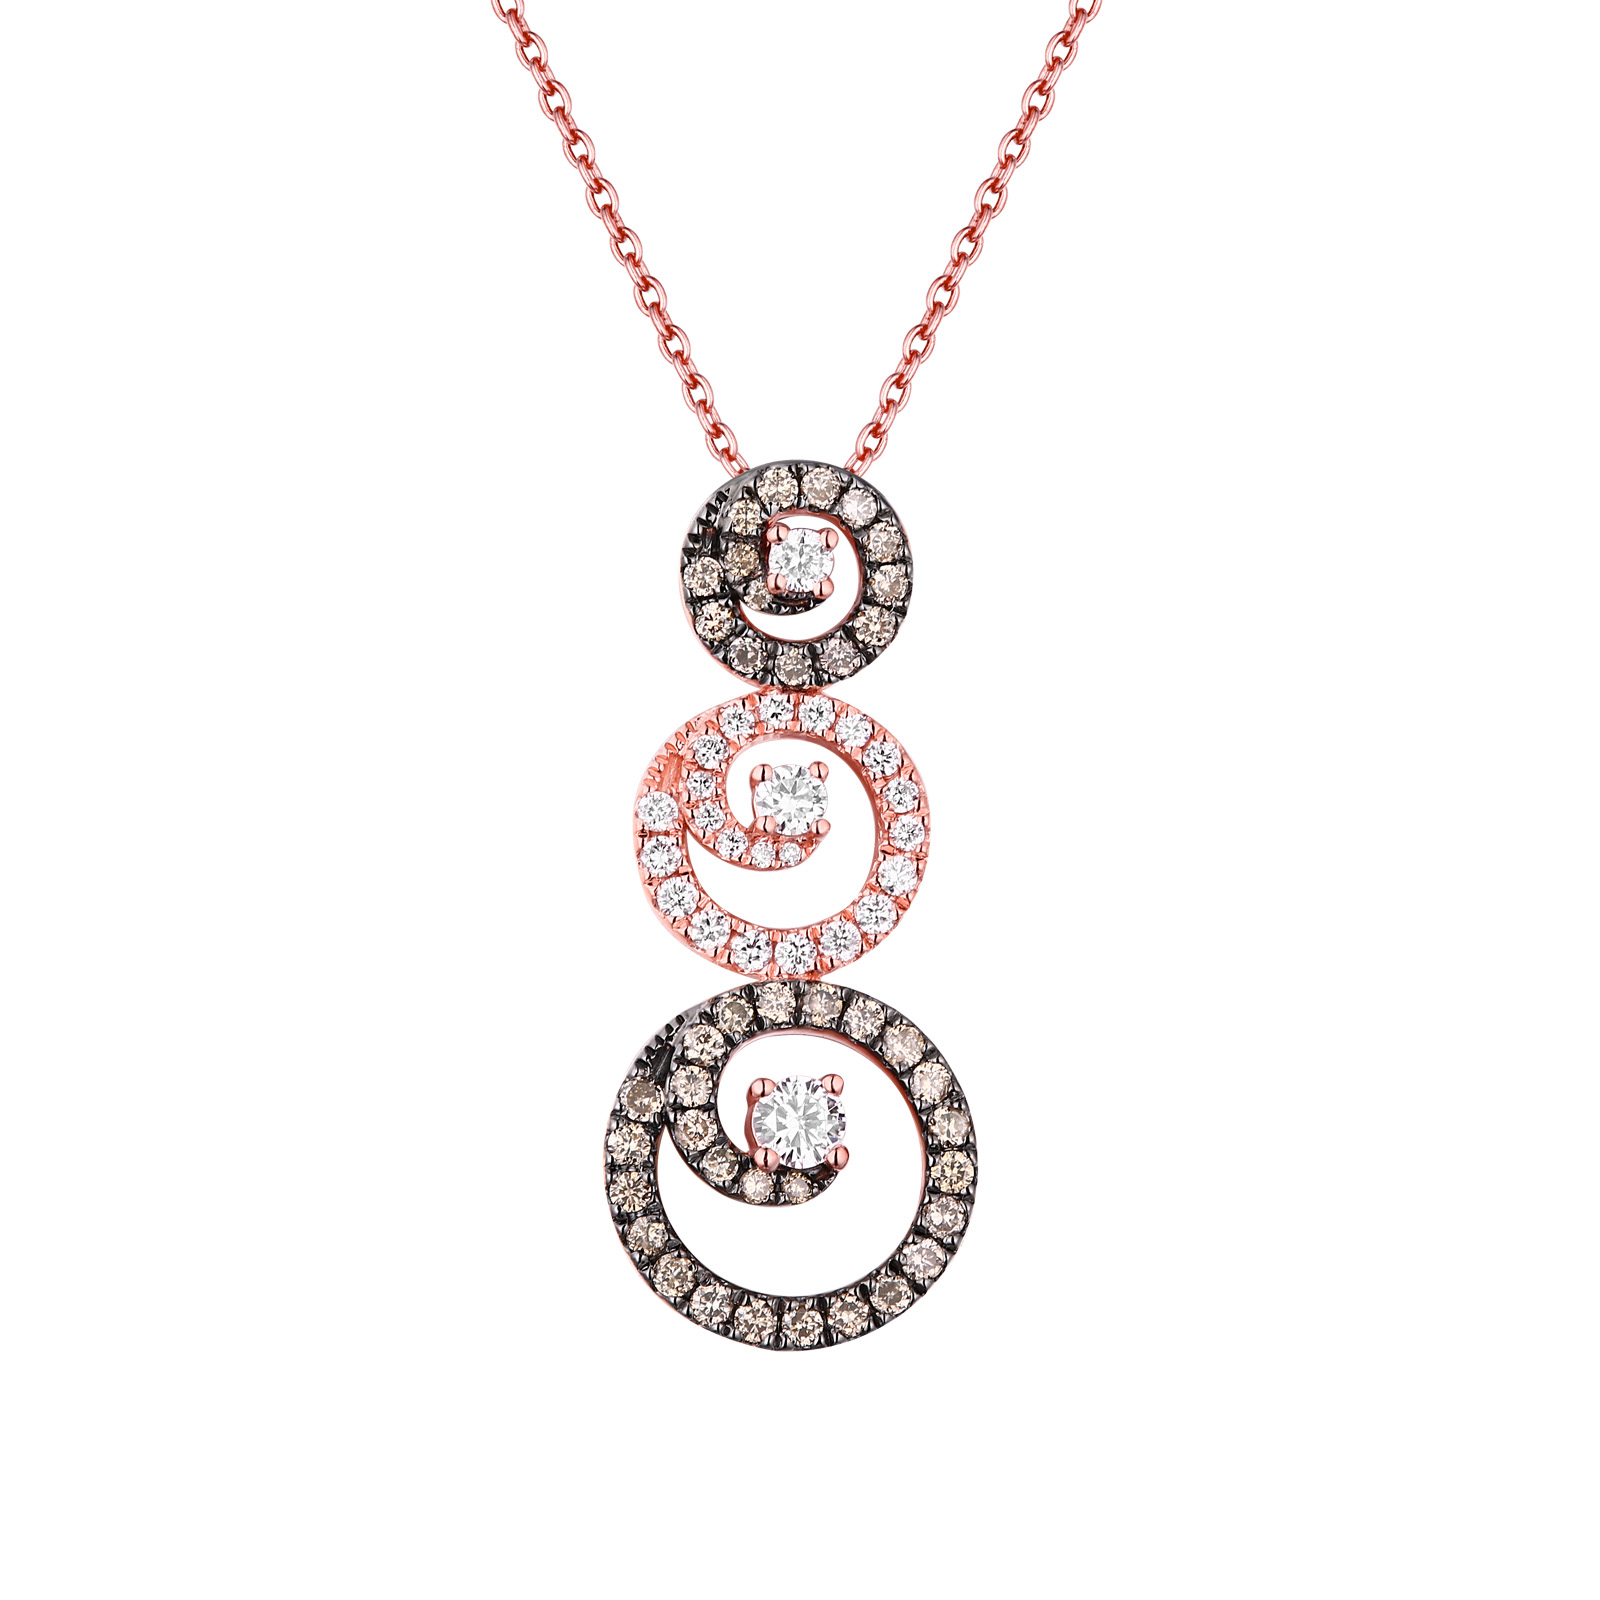 P26443WBR- 14K Rose Gold Diamond Pendant , 0.63 TCW